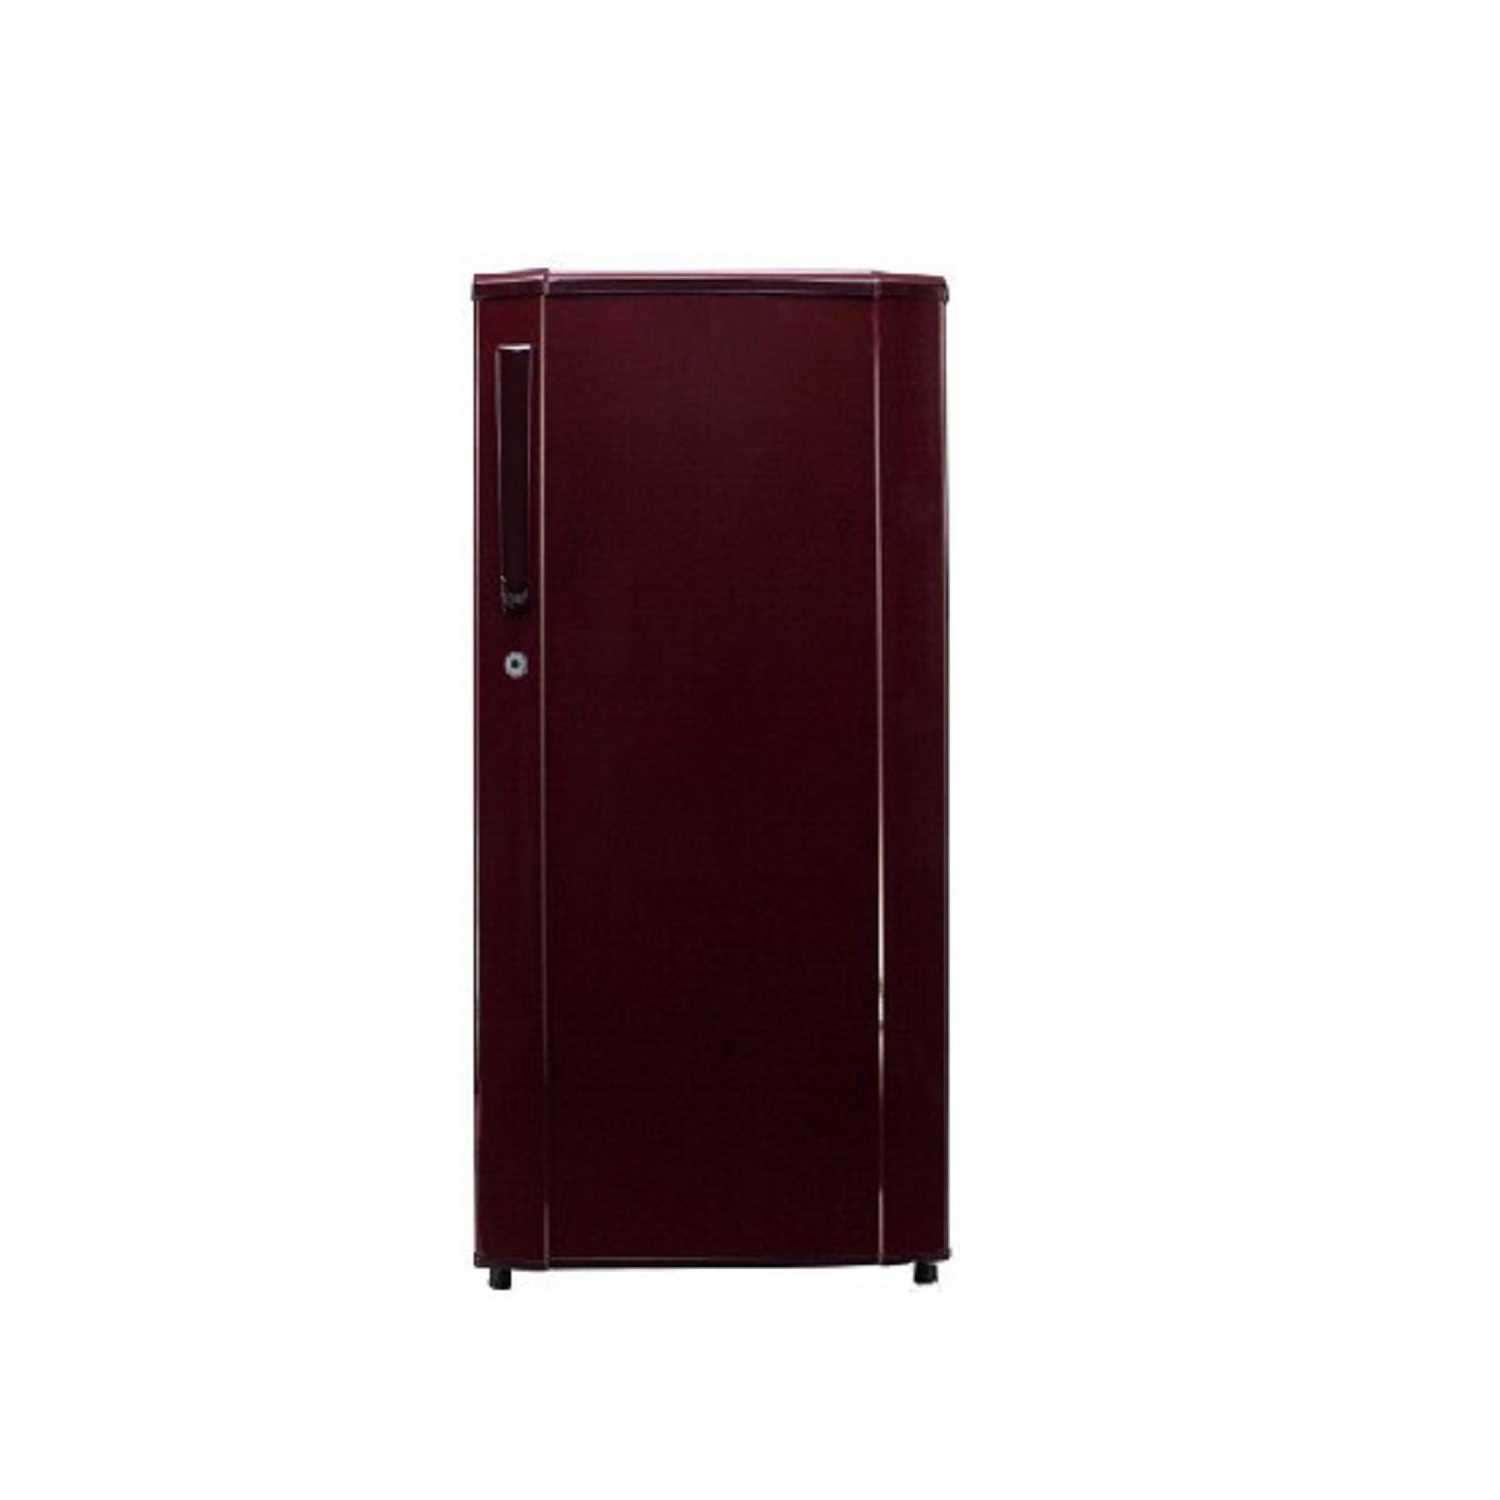 Haier HRD 1903SR R 190 Litres Single Door Direct Cool Refrigerator